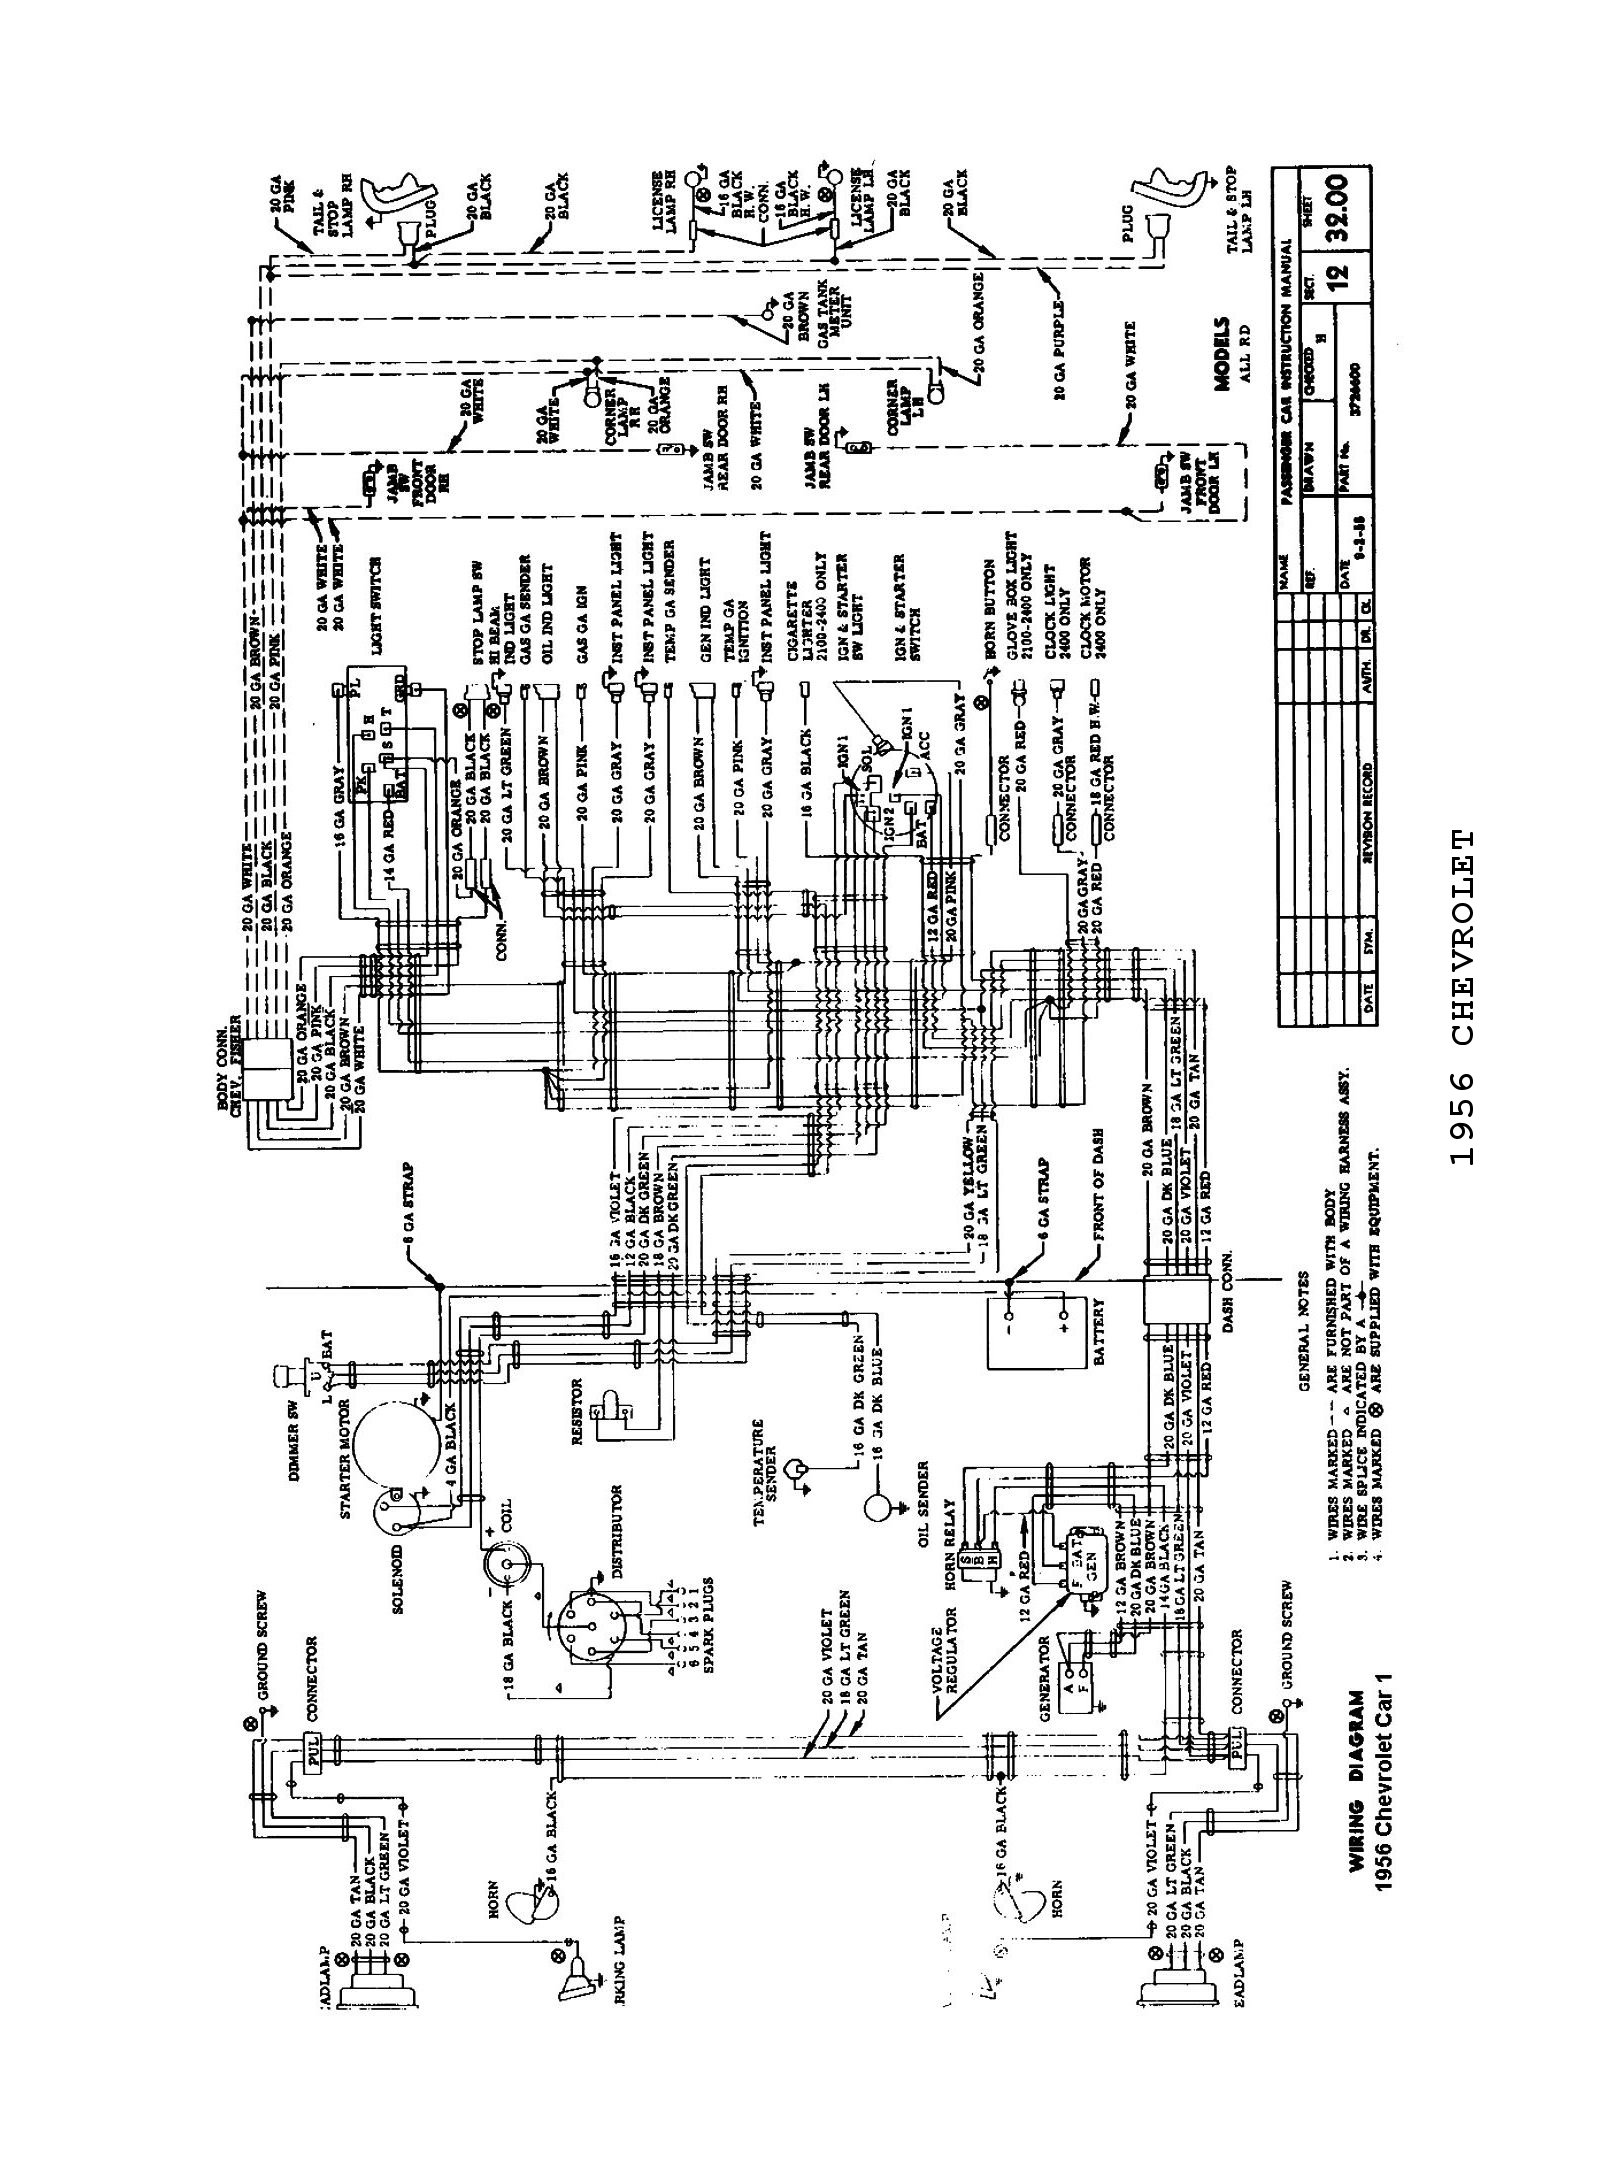 1950 chevy pickup wiring harness free image diagram  1950